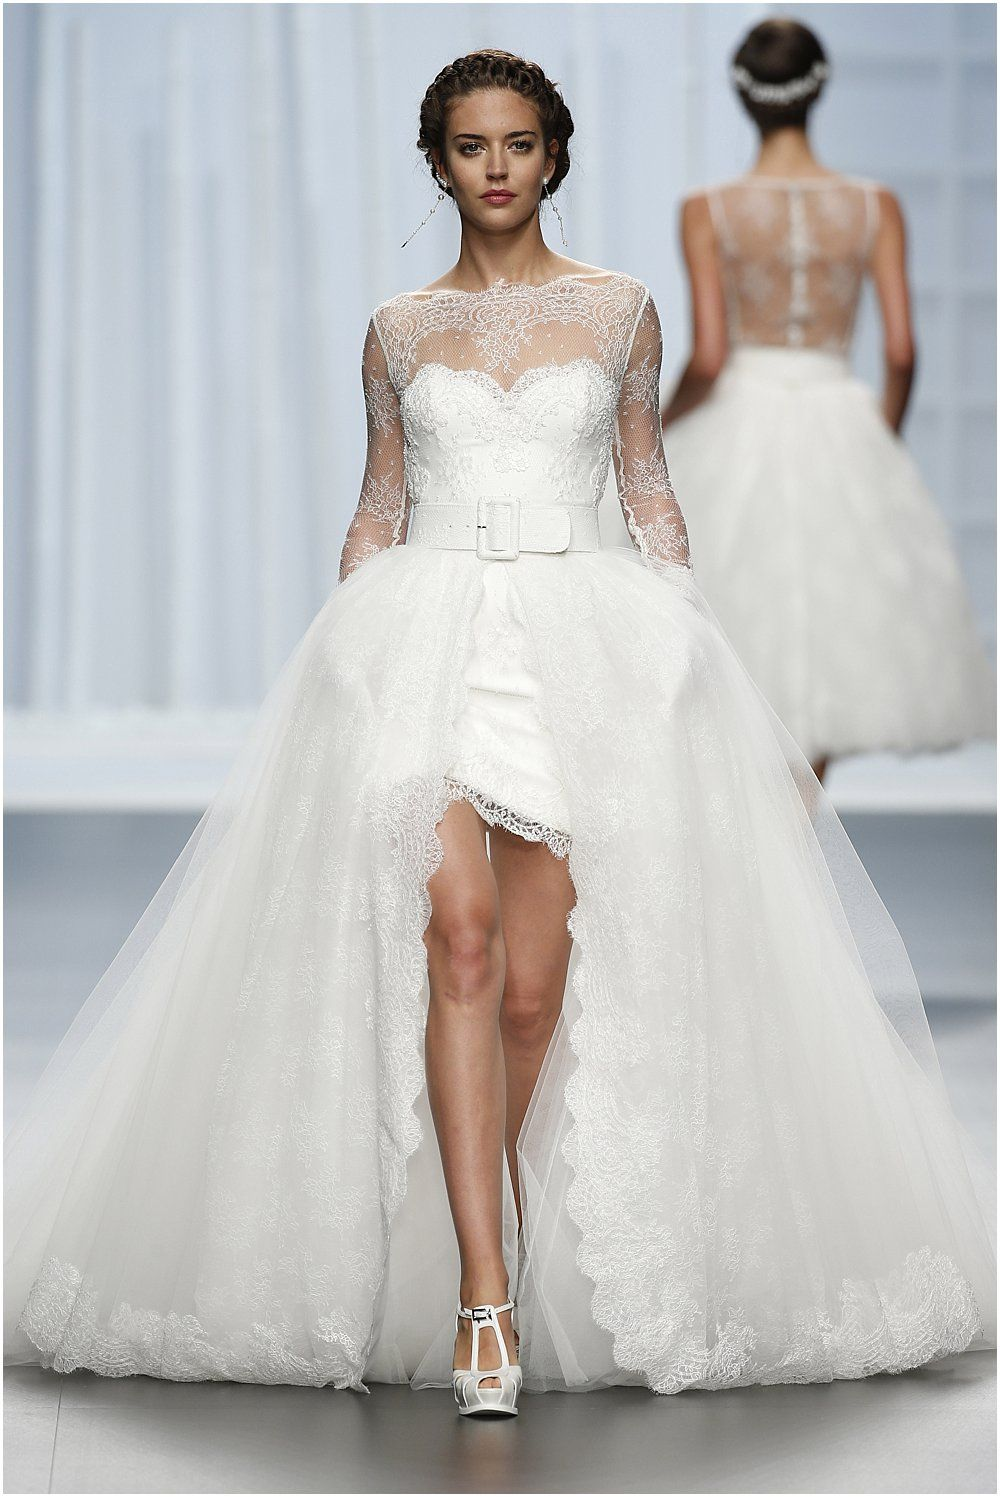 Pin by Glam Revolt on Future wedding wishes! | Pinterest | Gowns ...